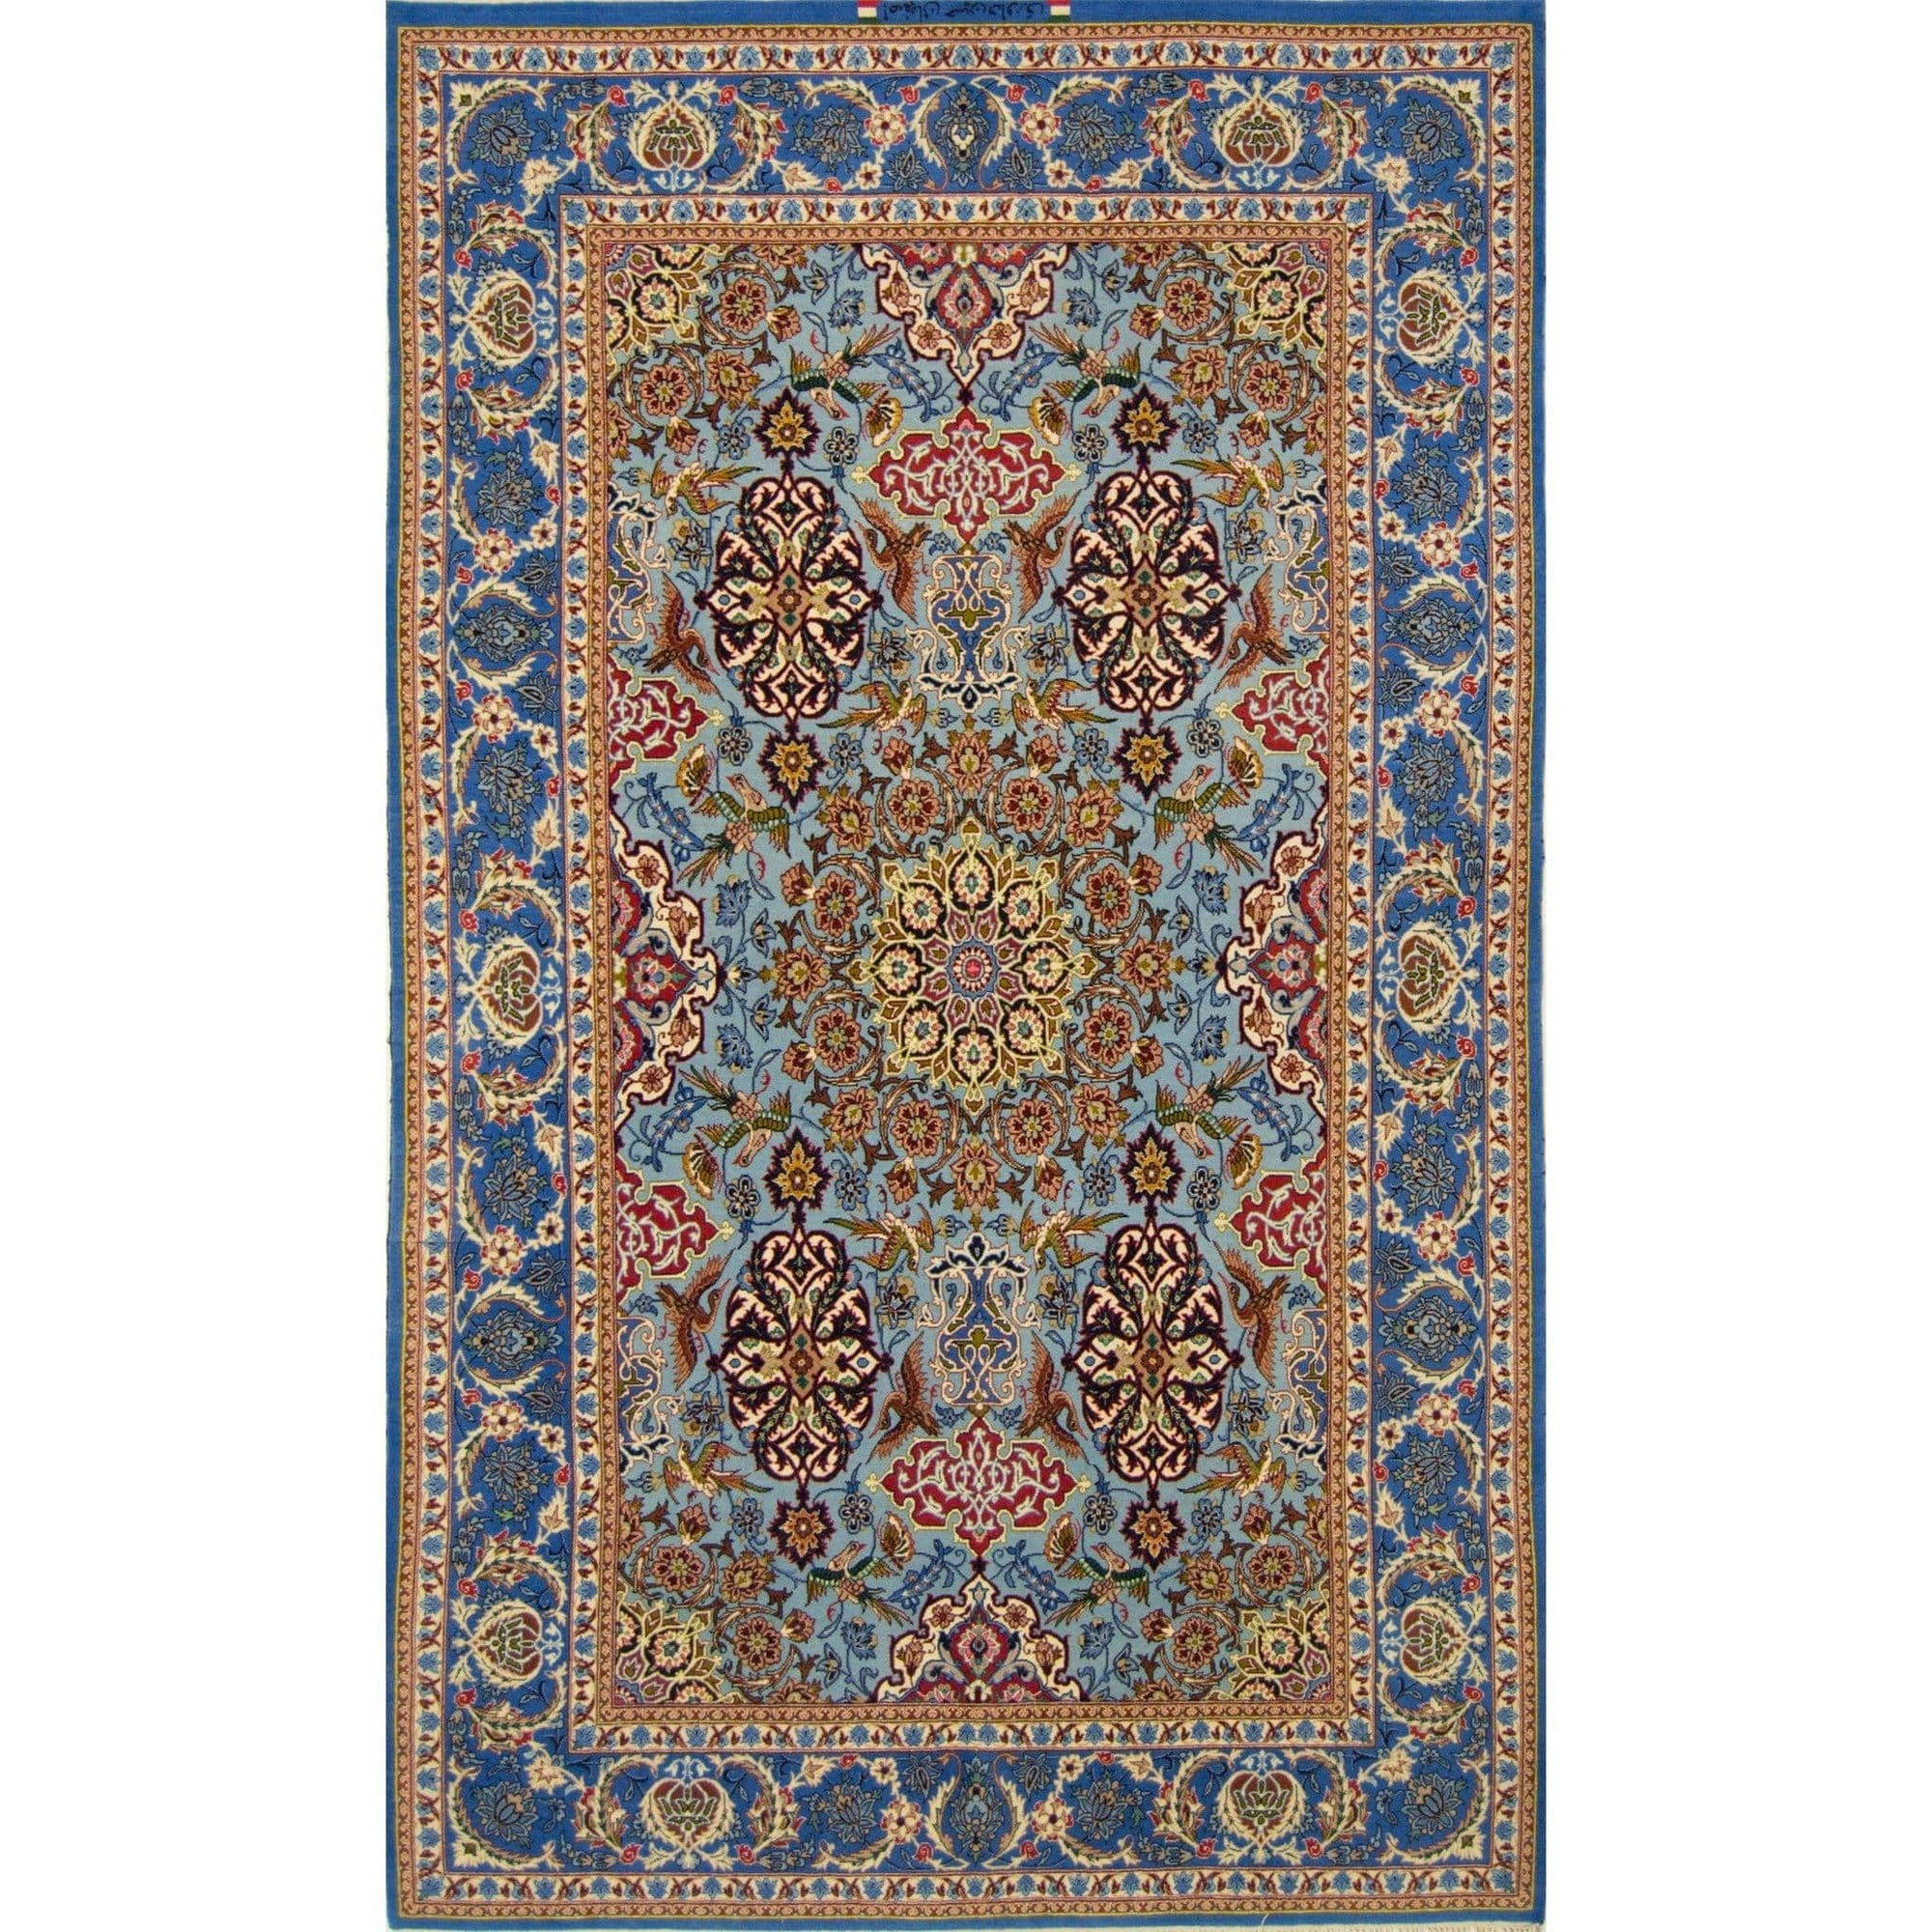 Fine Hand-knotted Signed Isfahan Silk And Wool (Reversible) Persian Rug 144cm x 231cm Persian-Rug | House-of-Haghi | NewMarket | Auckland | NZ | Handmade Persian Rugs | Hand Knotted Persian Rugs